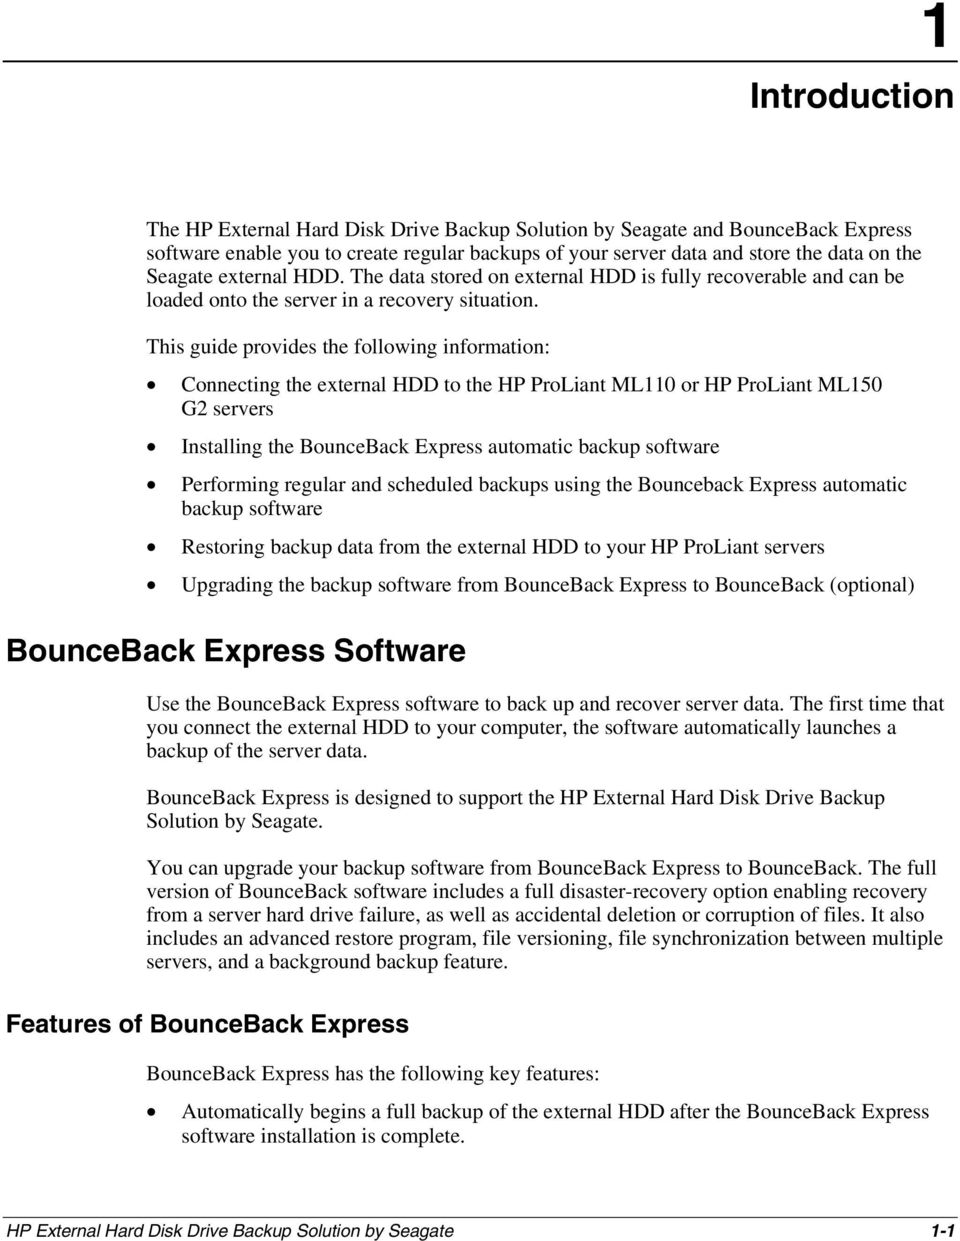 This guide provides the following information: Connecting the external HDD to the HP ProLiant ML110 or HP ProLiant ML150 G2 servers Installing the BounceBack Express automatic backup software